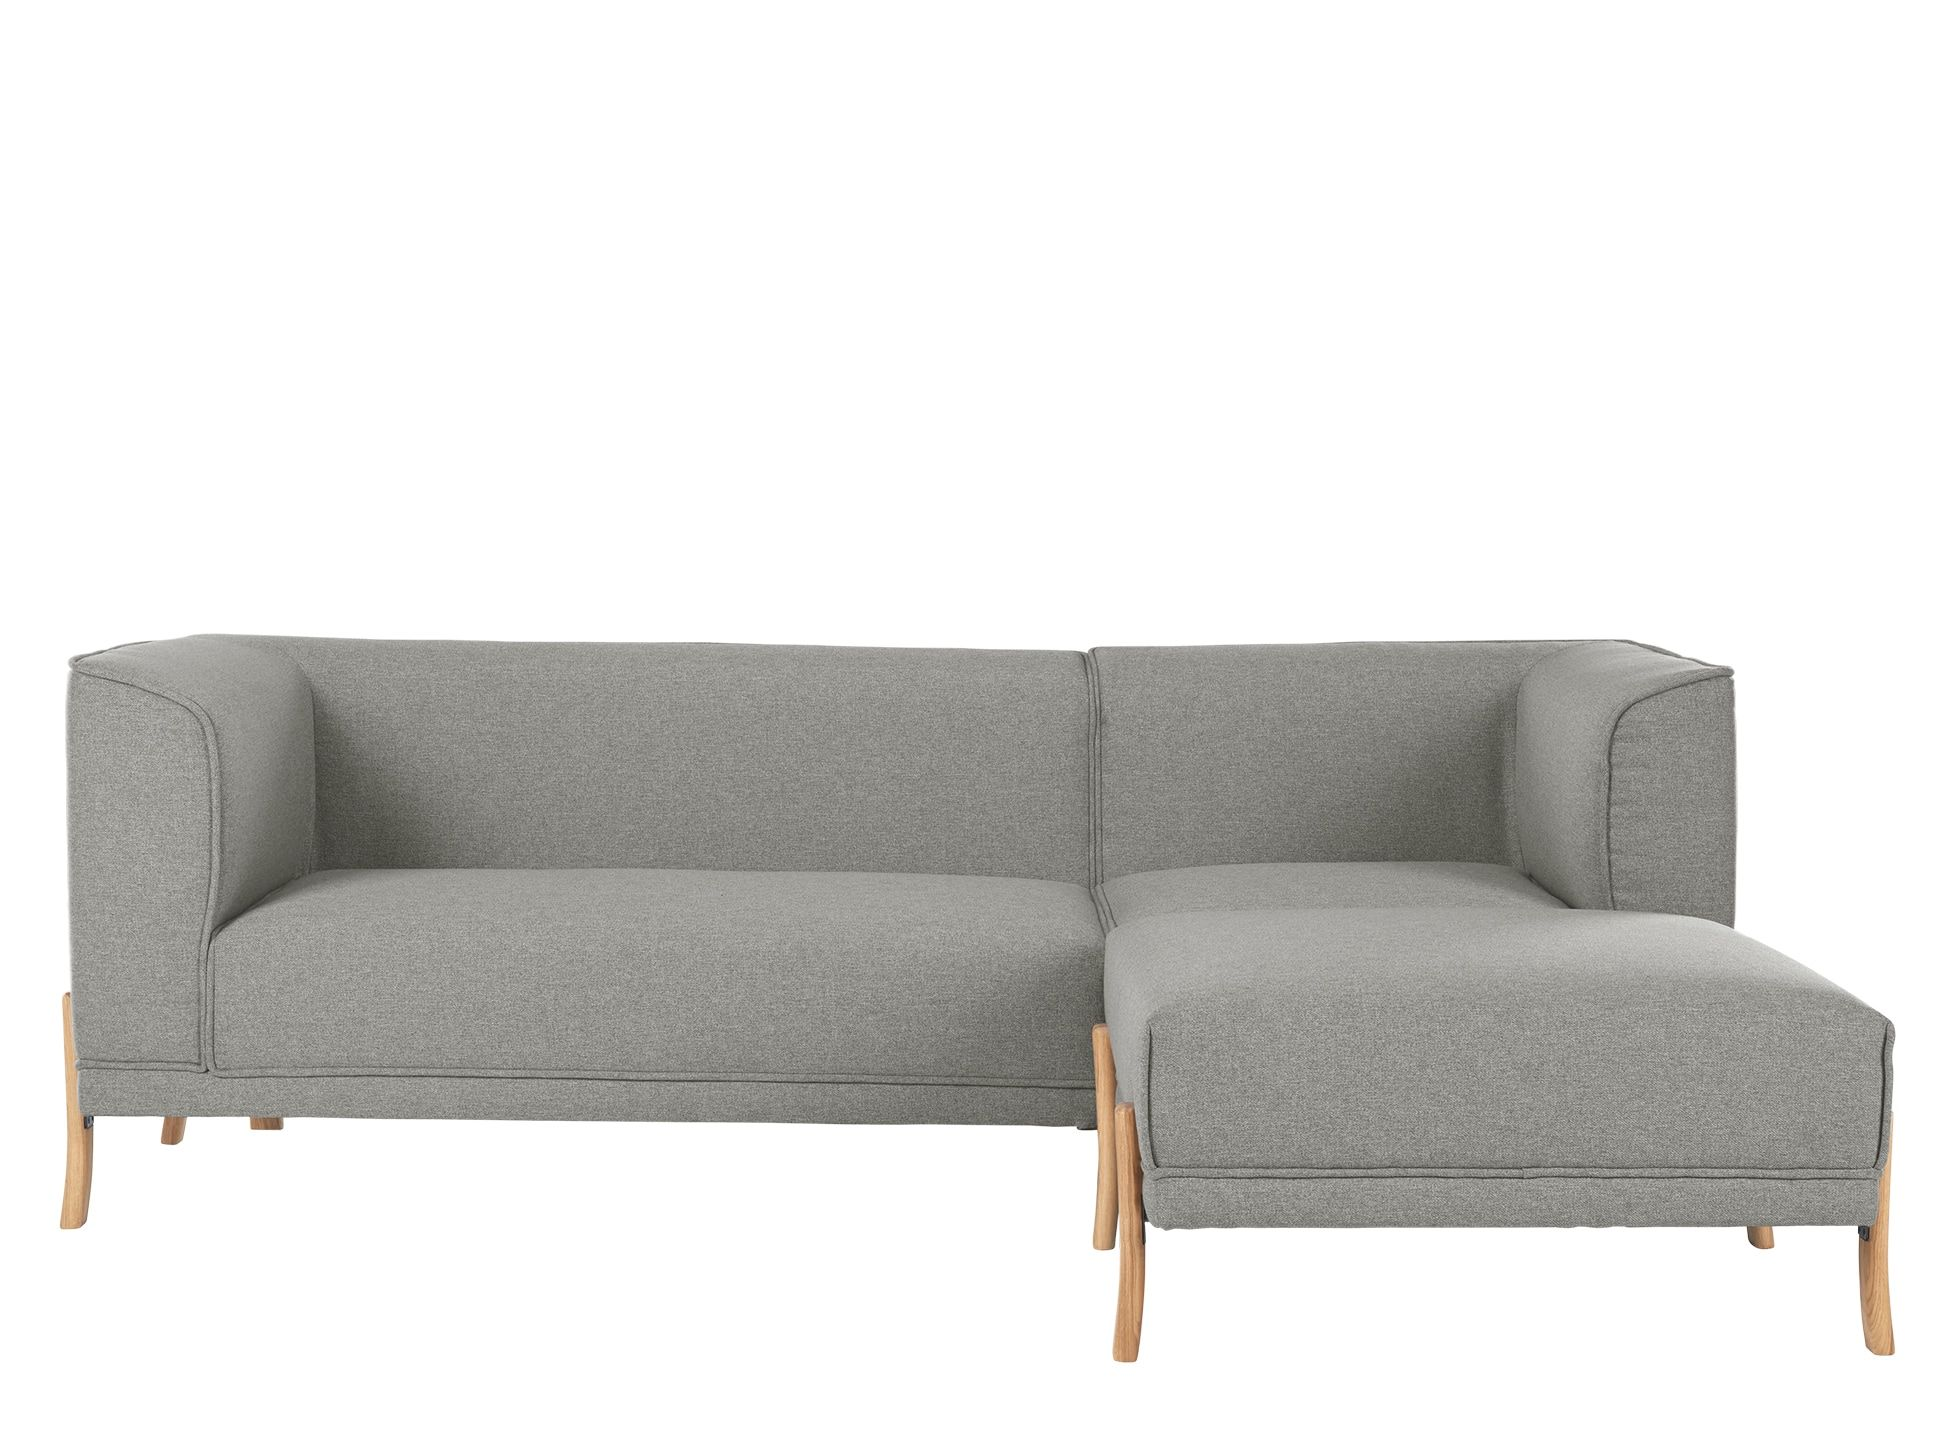 Sofa Bed Express Delivery Magnus Right Corner Sofa Group Mountain Grey From Made